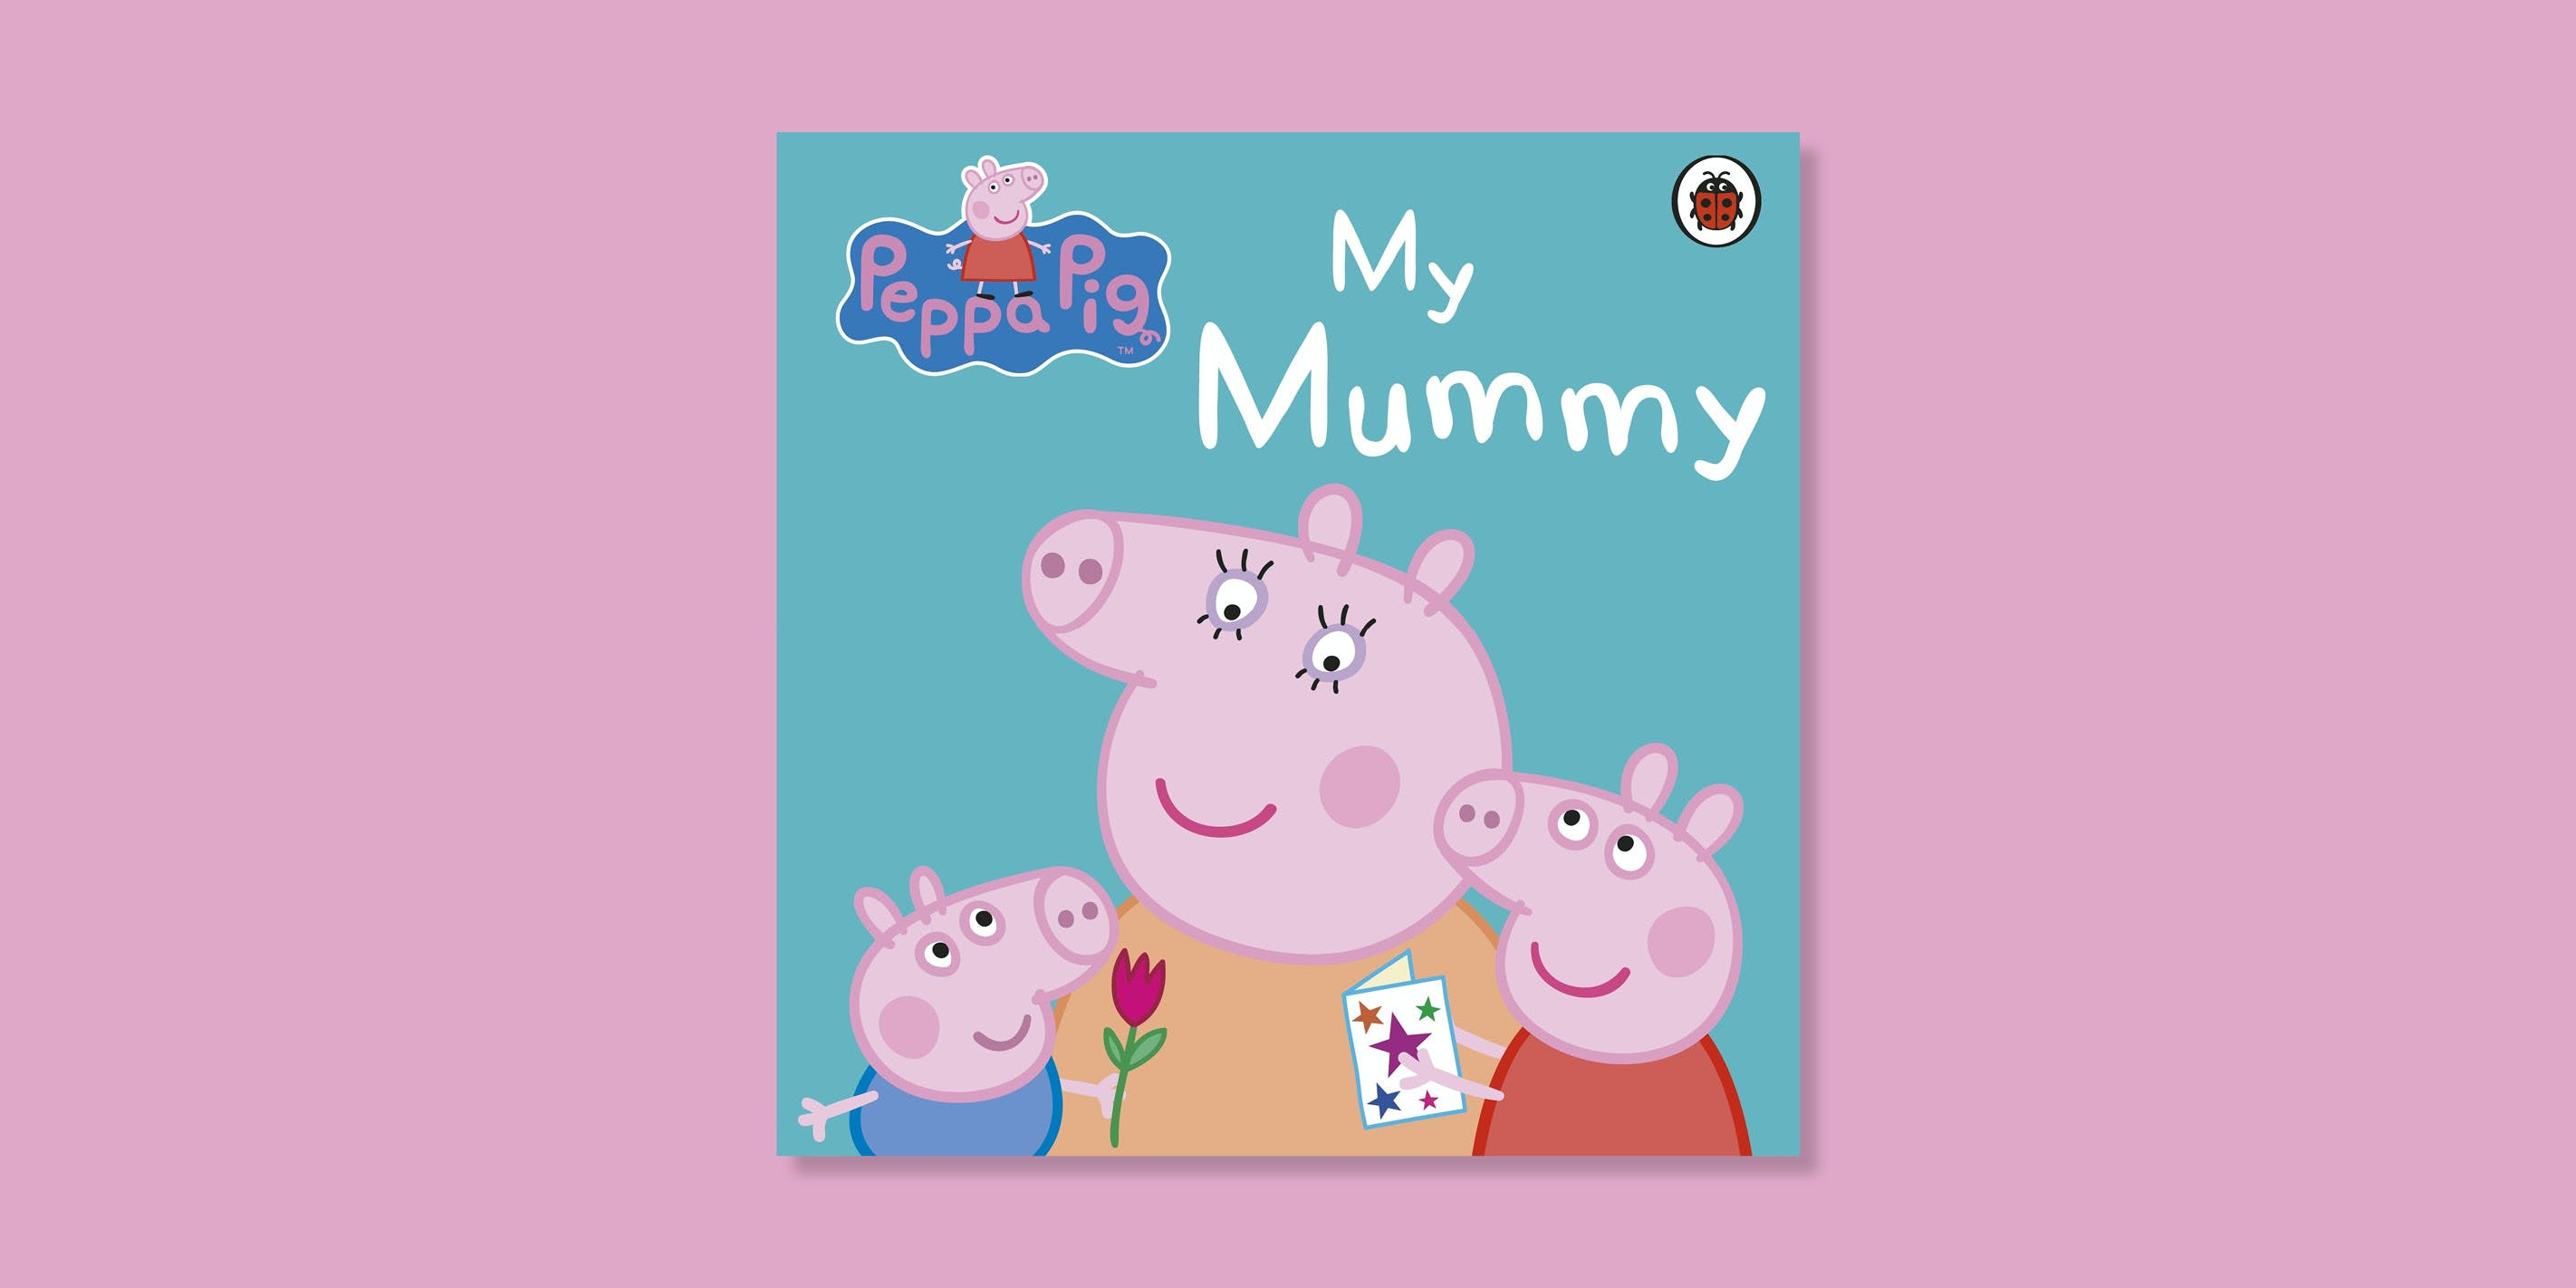 Peppa Pig Mother's Day card